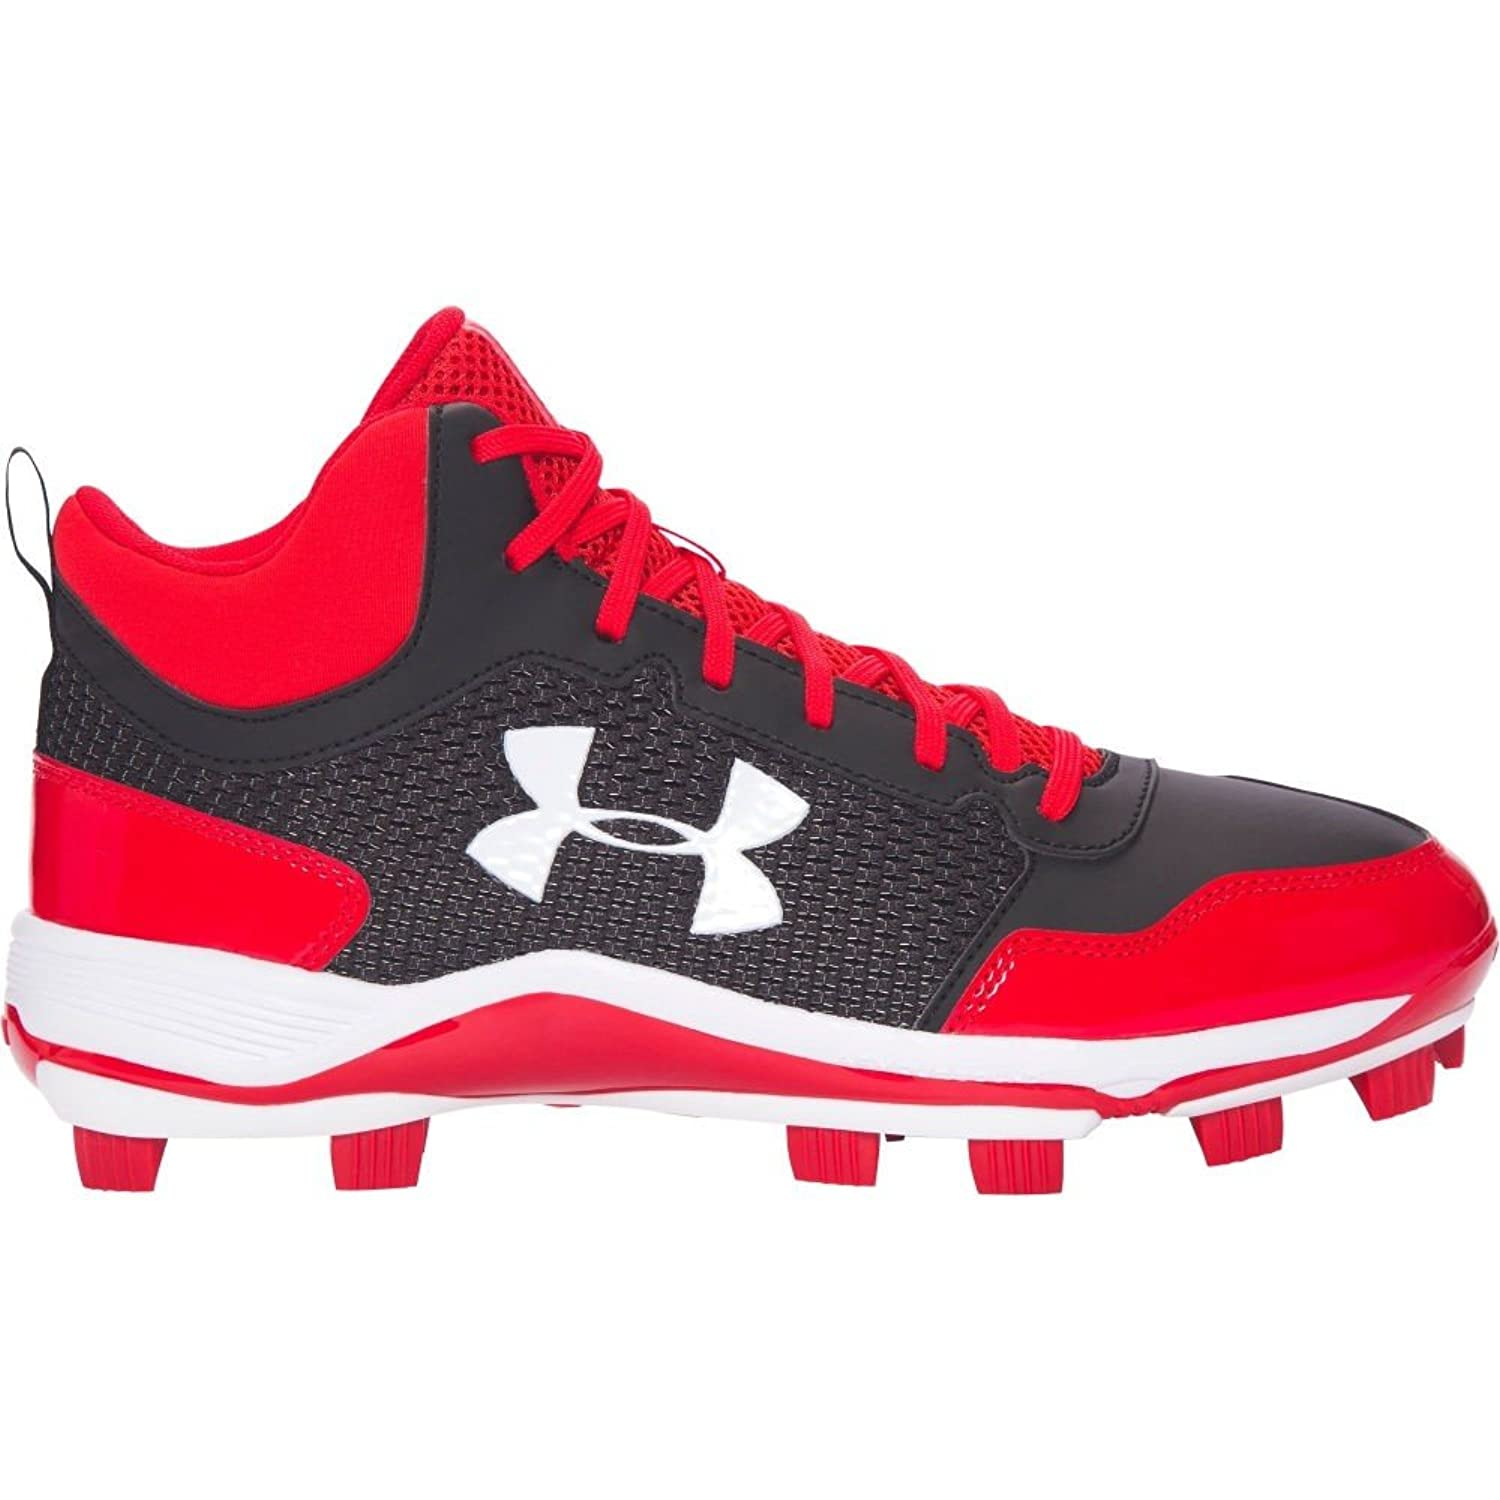 (アンダーアーマー) Under Armour メンズ 野球 シューズ靴 Under Armour Heater Mid TPU Baseball Cleats [並行輸入品] B077YC6Q8G 9.0-Medium